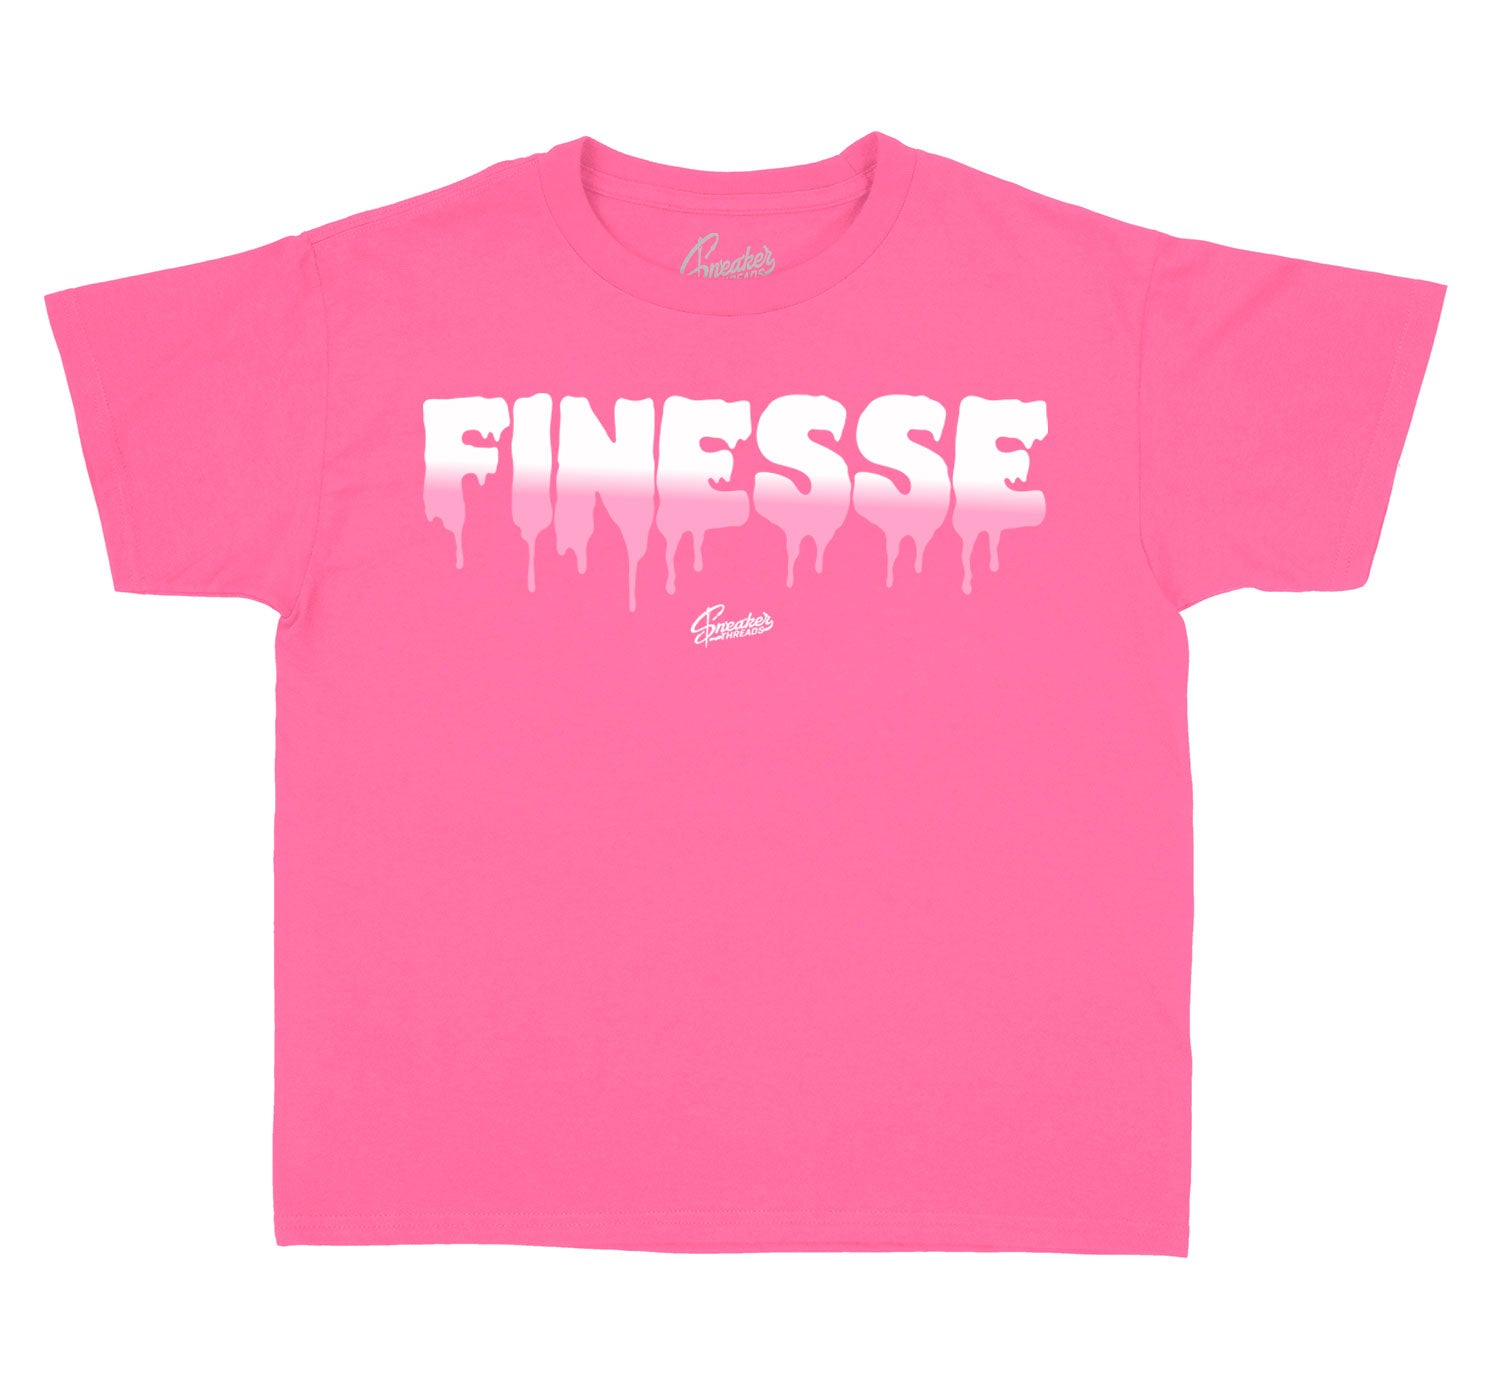 Kids Ice Cream 12 Shirt - Finesse - Pink